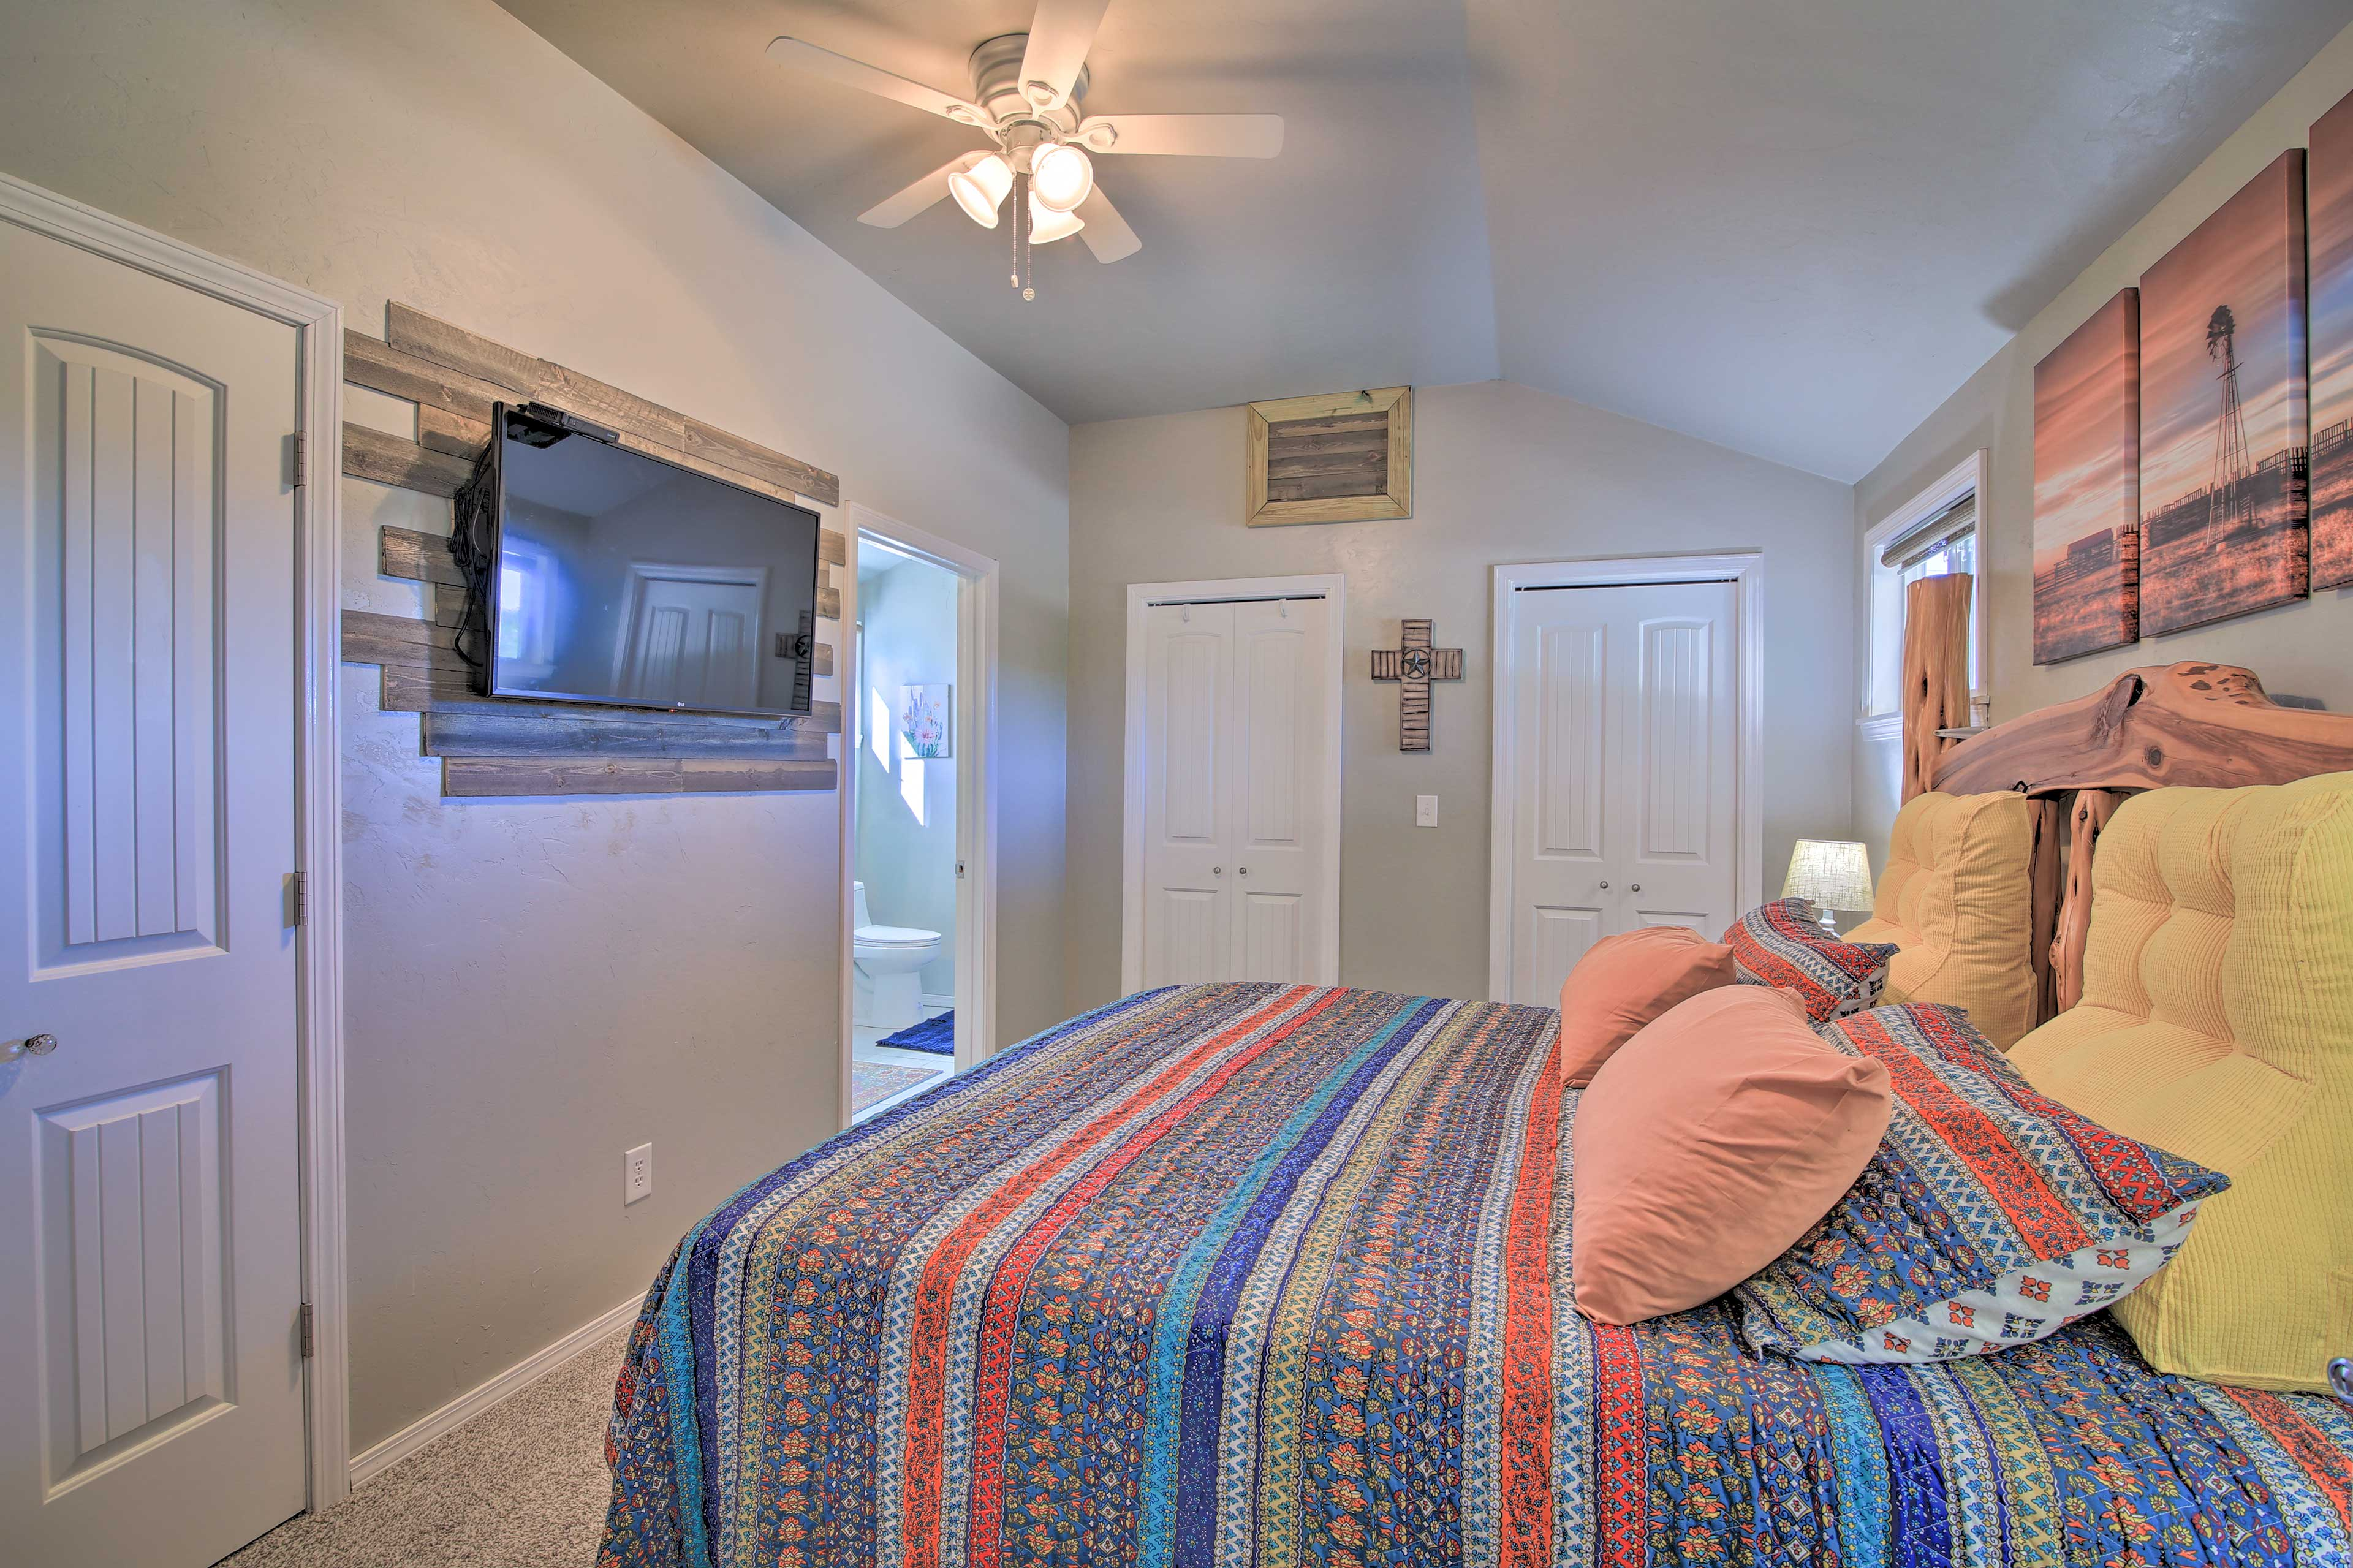 The master bedroom has a king bed and Smart TV so you can watch your shows!